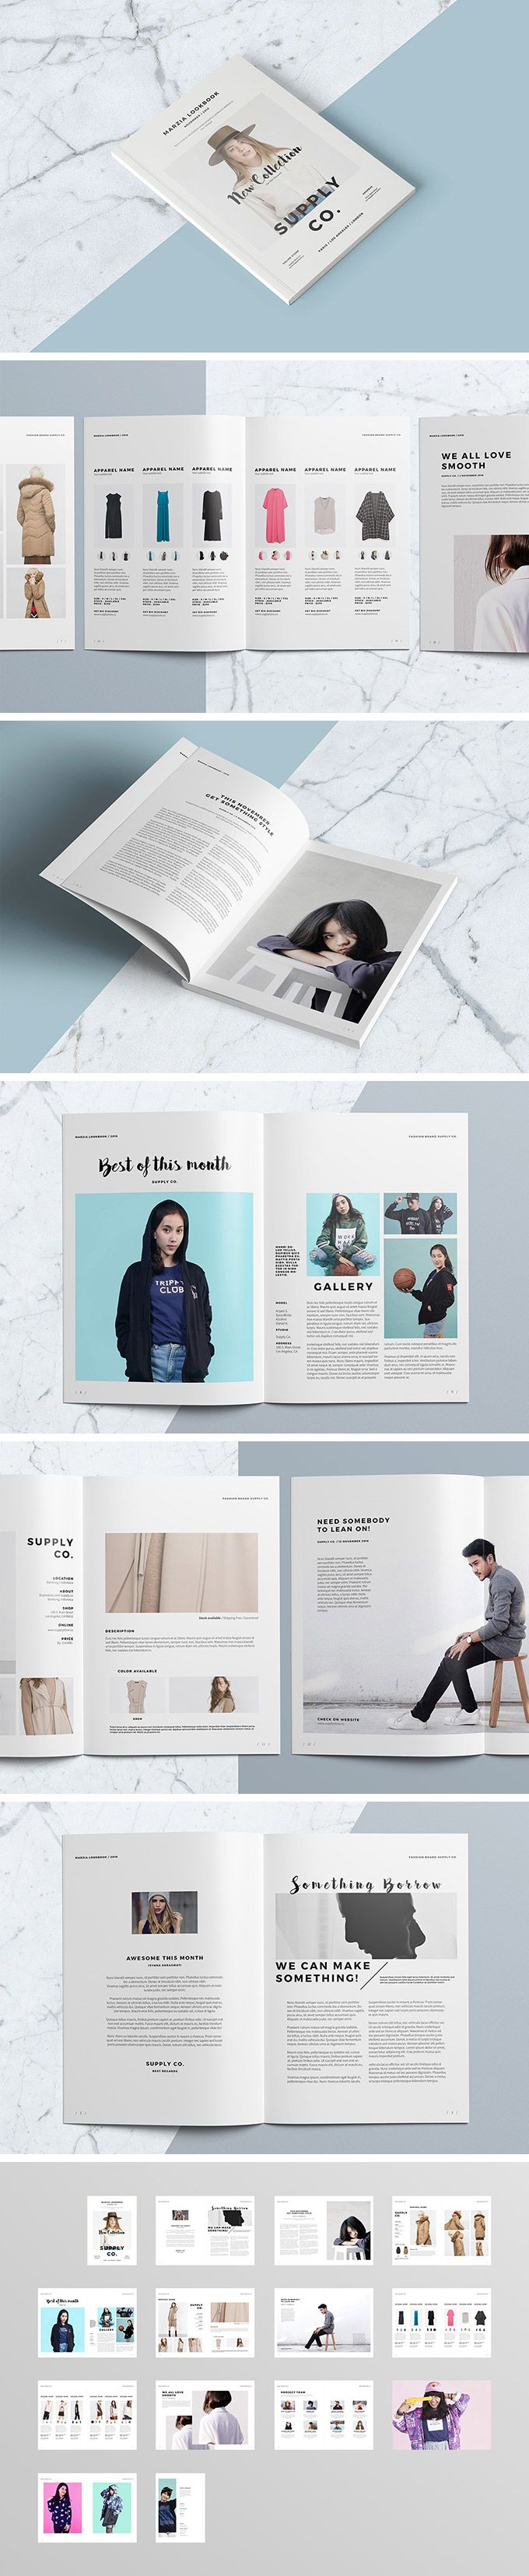 InDesign Lookbook Template - download freebie by PixelBuddha